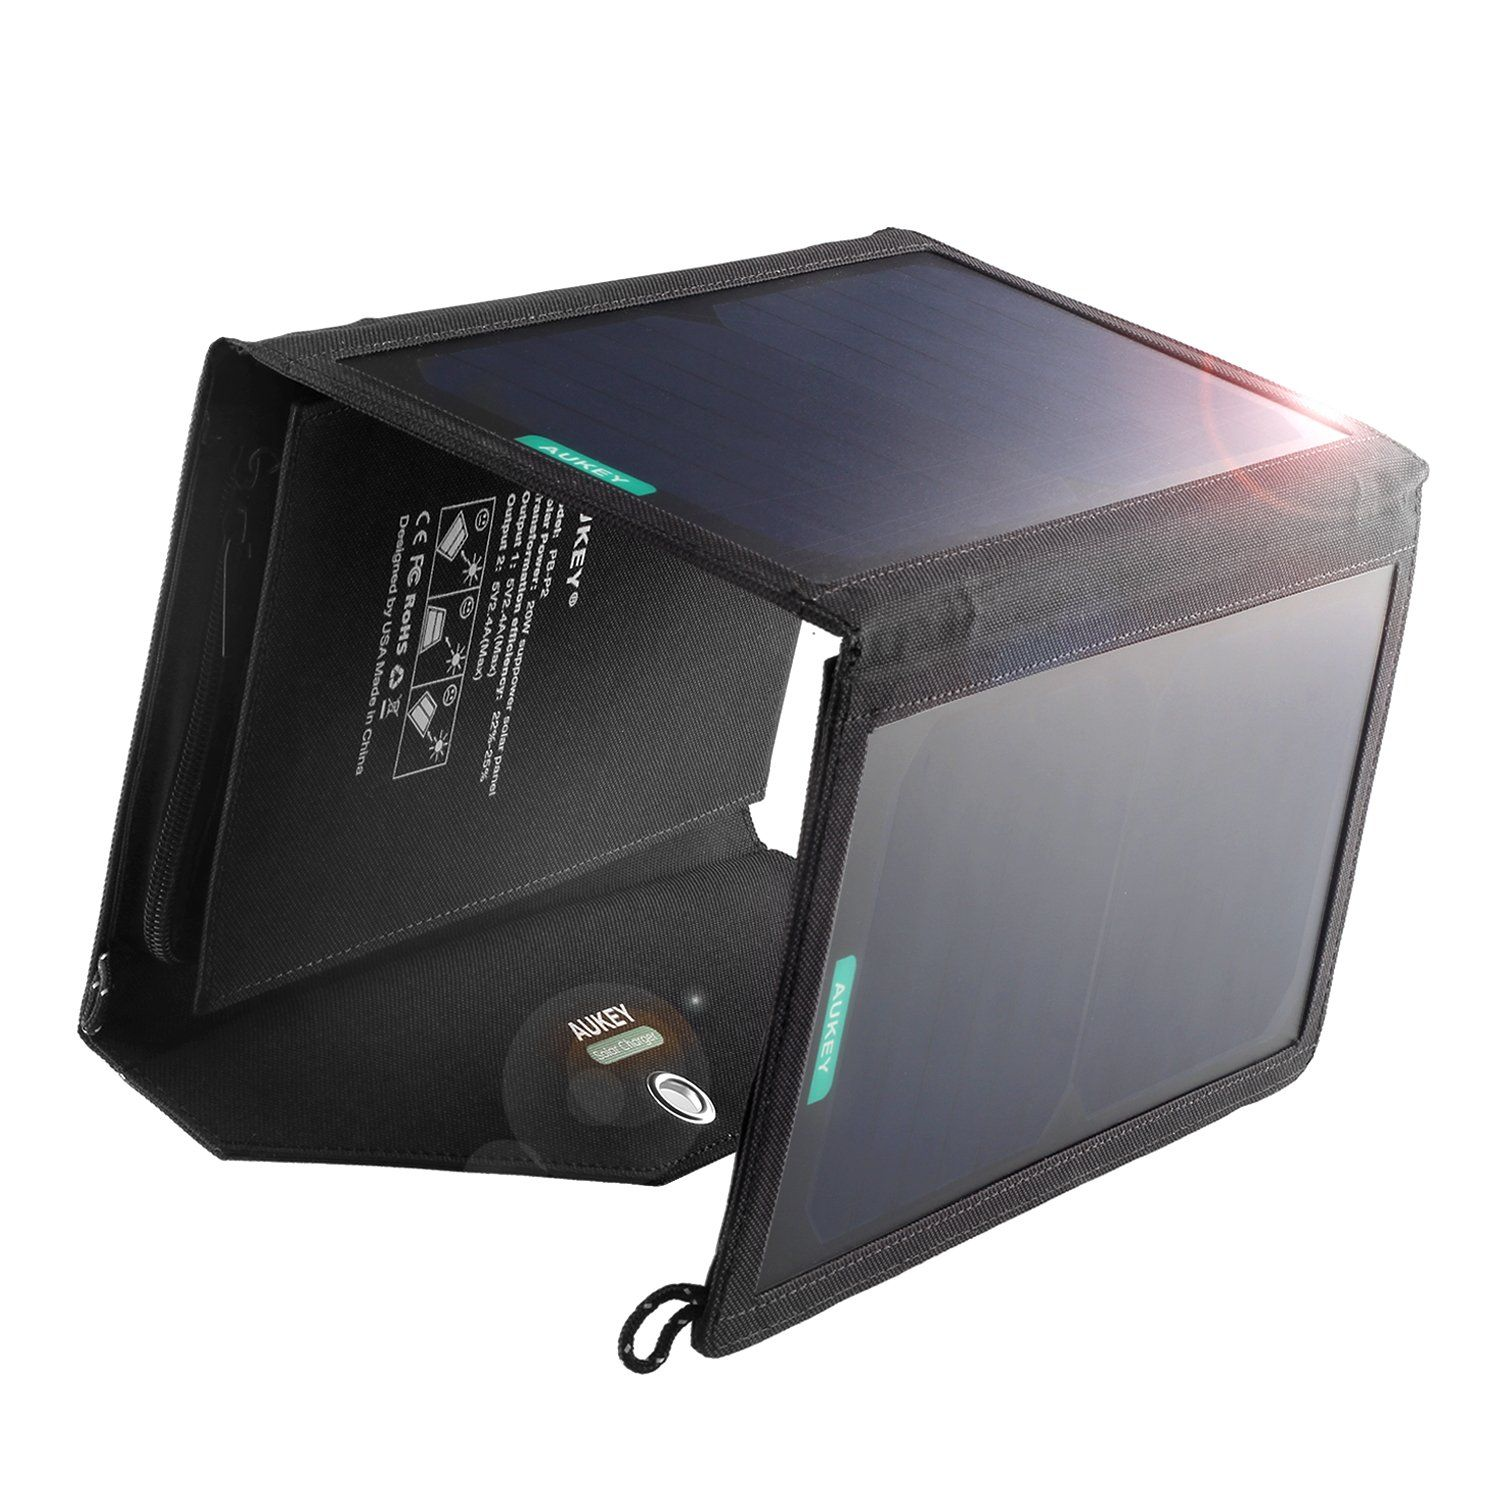 Solar Charger, Solar Panel Charger